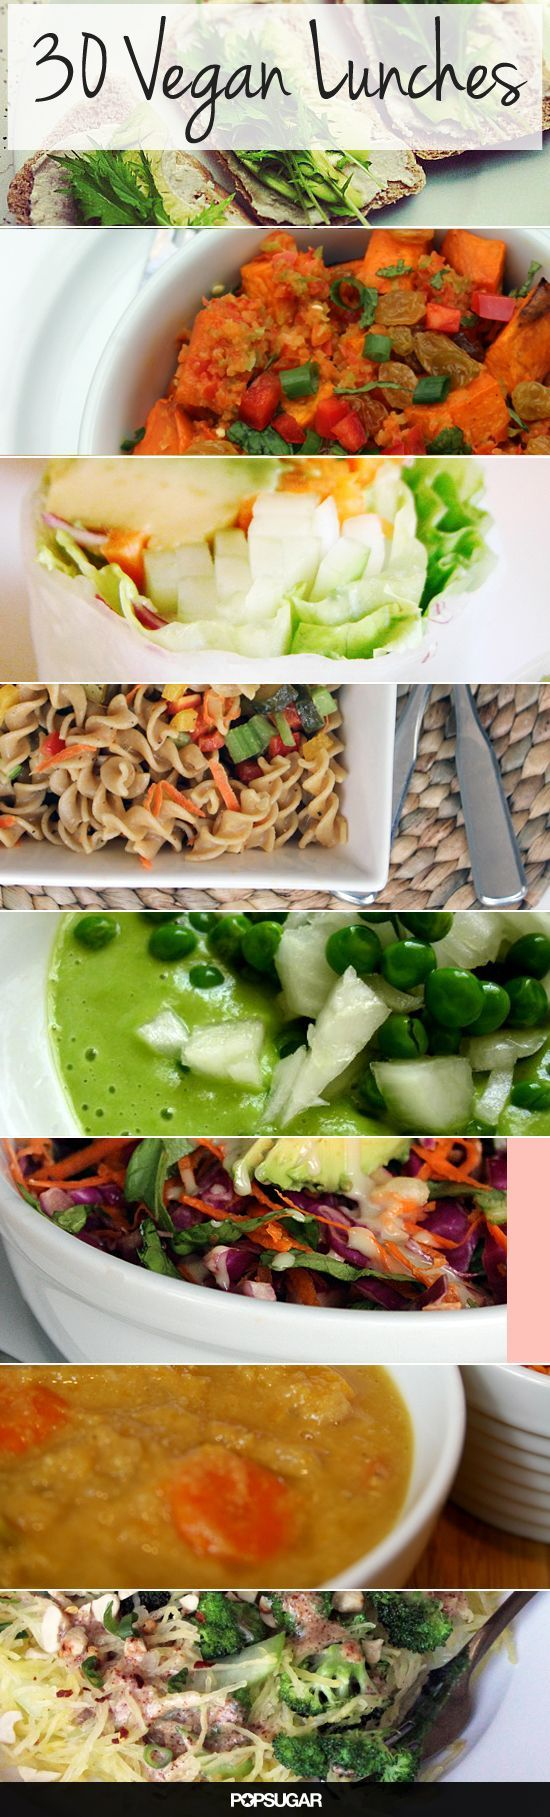 I'm getting more interested in vegan diets, I don't think I can fully commit because I also have celiac to worry about, but it's good to start somewhere! | Organize, save, and share all of your recipes from one location with @RecipeTin! Find out more here: http://www.recipetinapp.com/